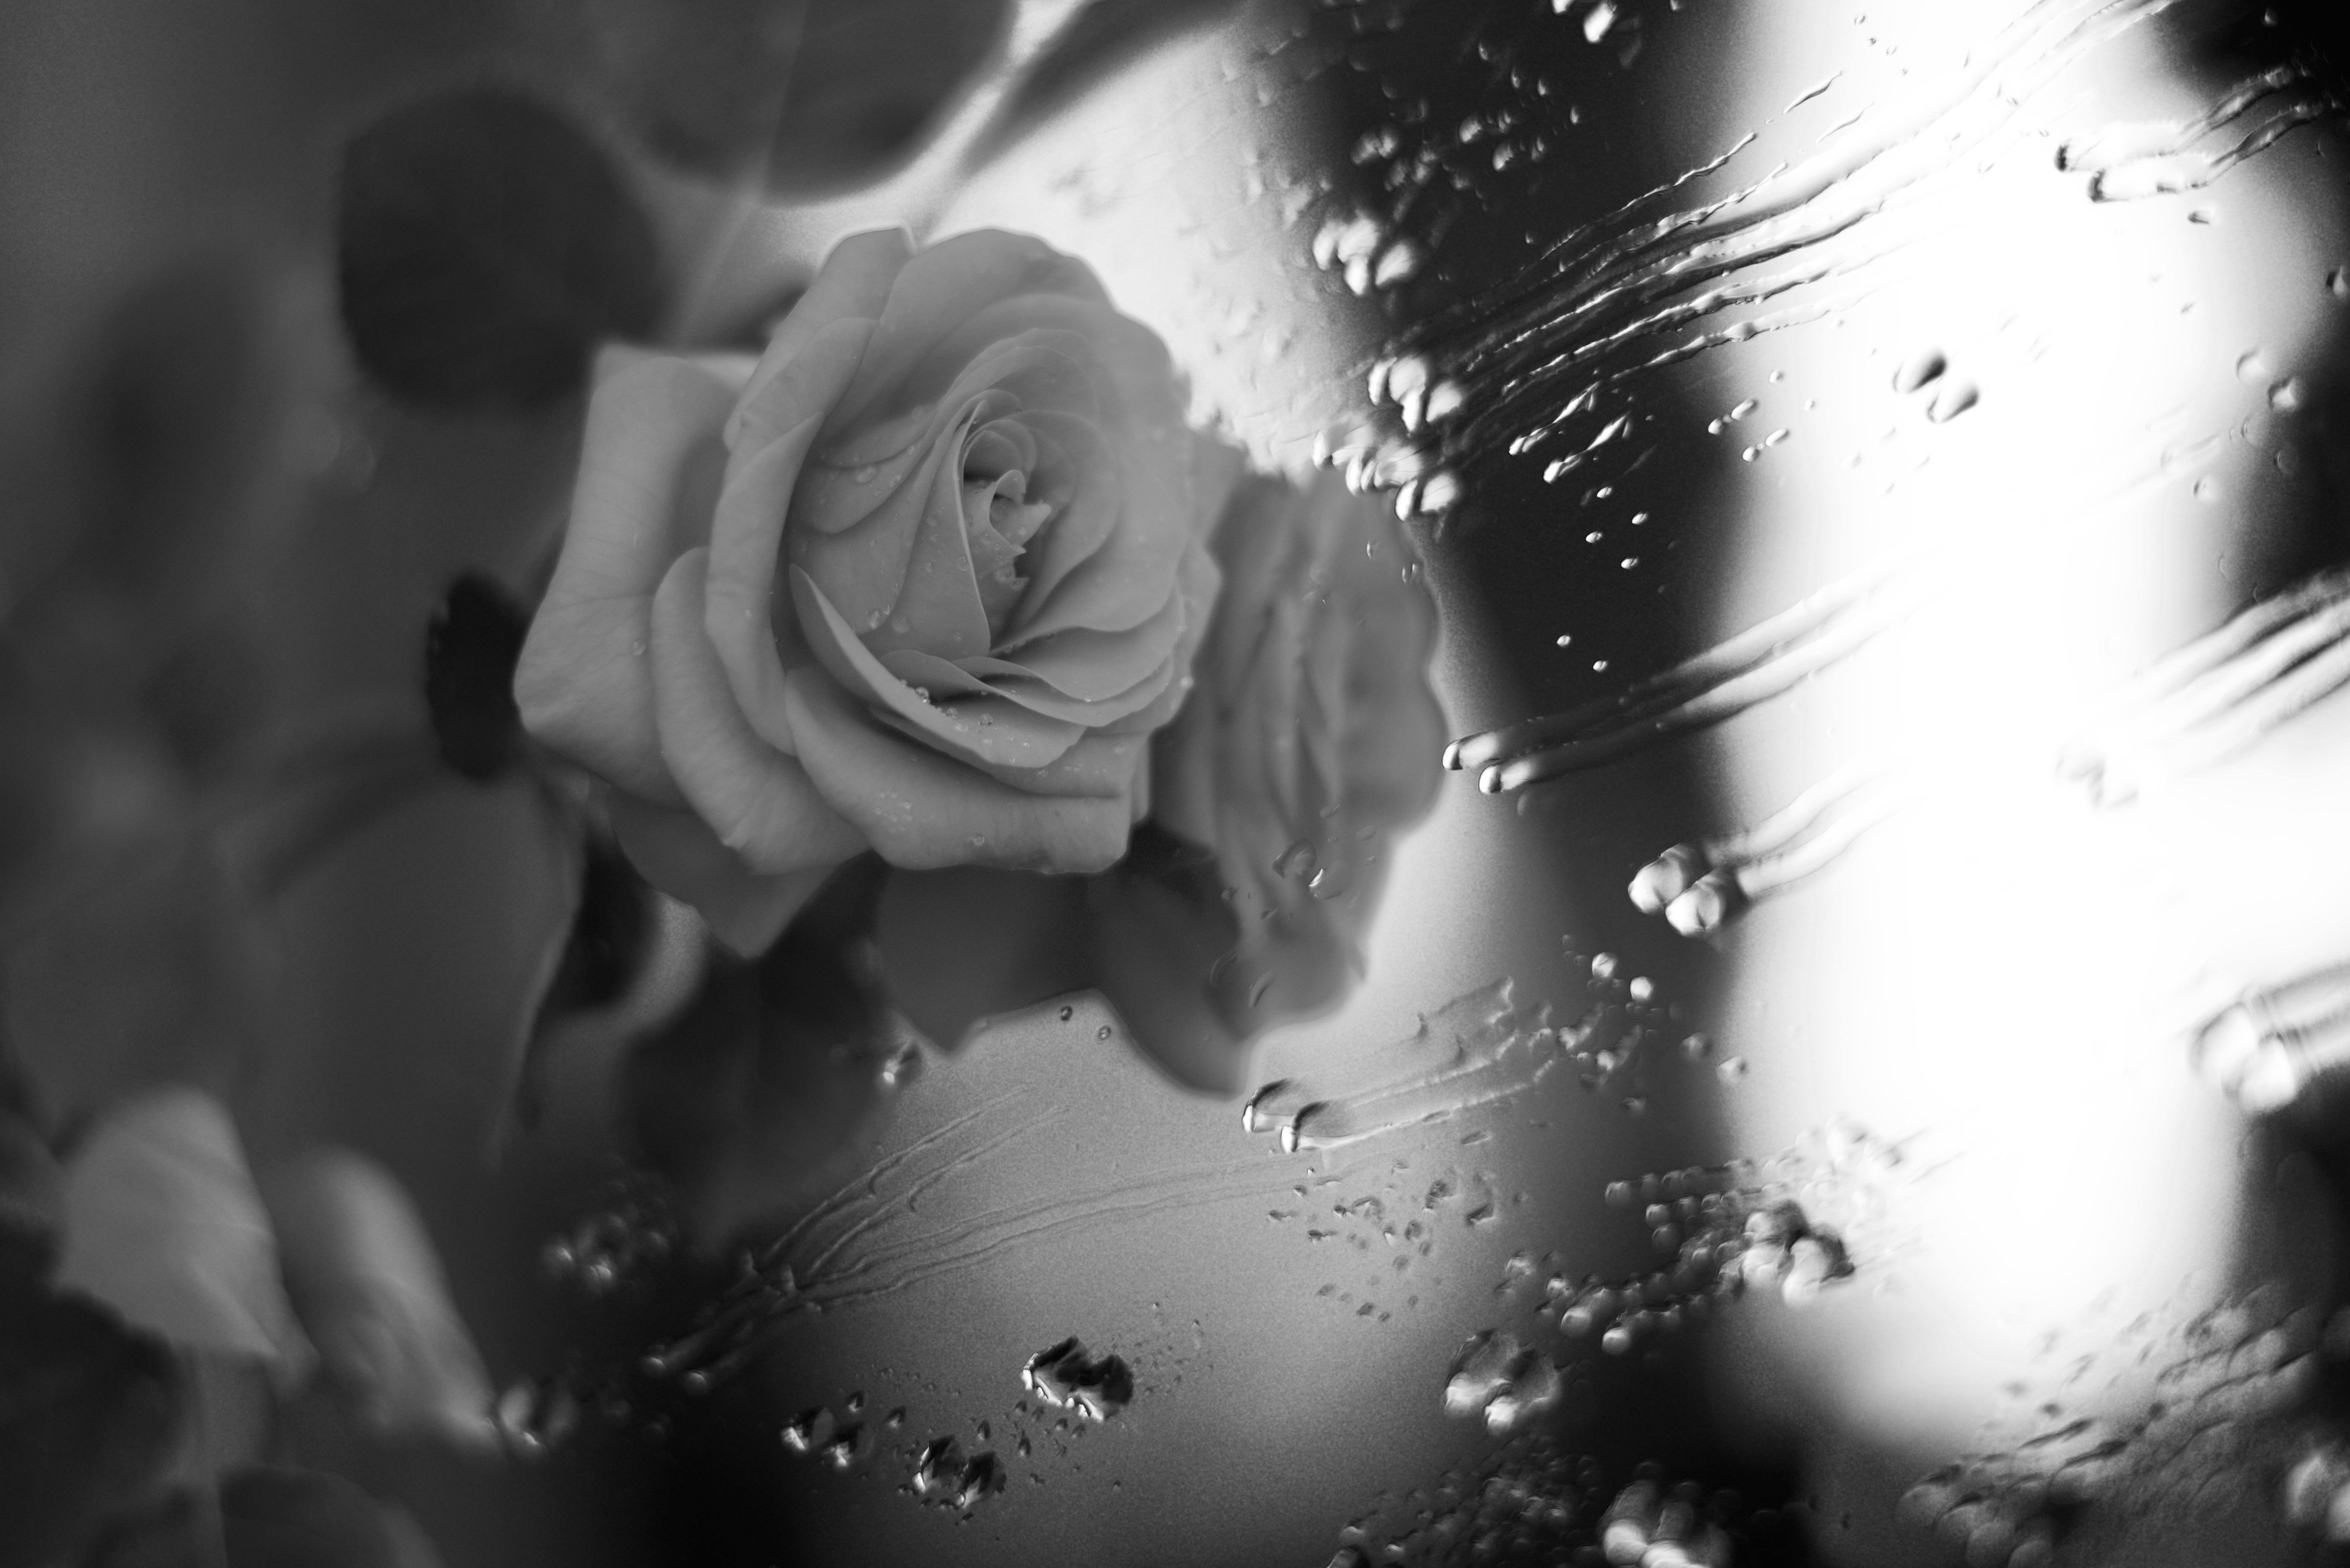 Rose near a window with rain drops 5k retina ultra hd wallpaper and photography black white rose flower water drop wallpaper altavistaventures